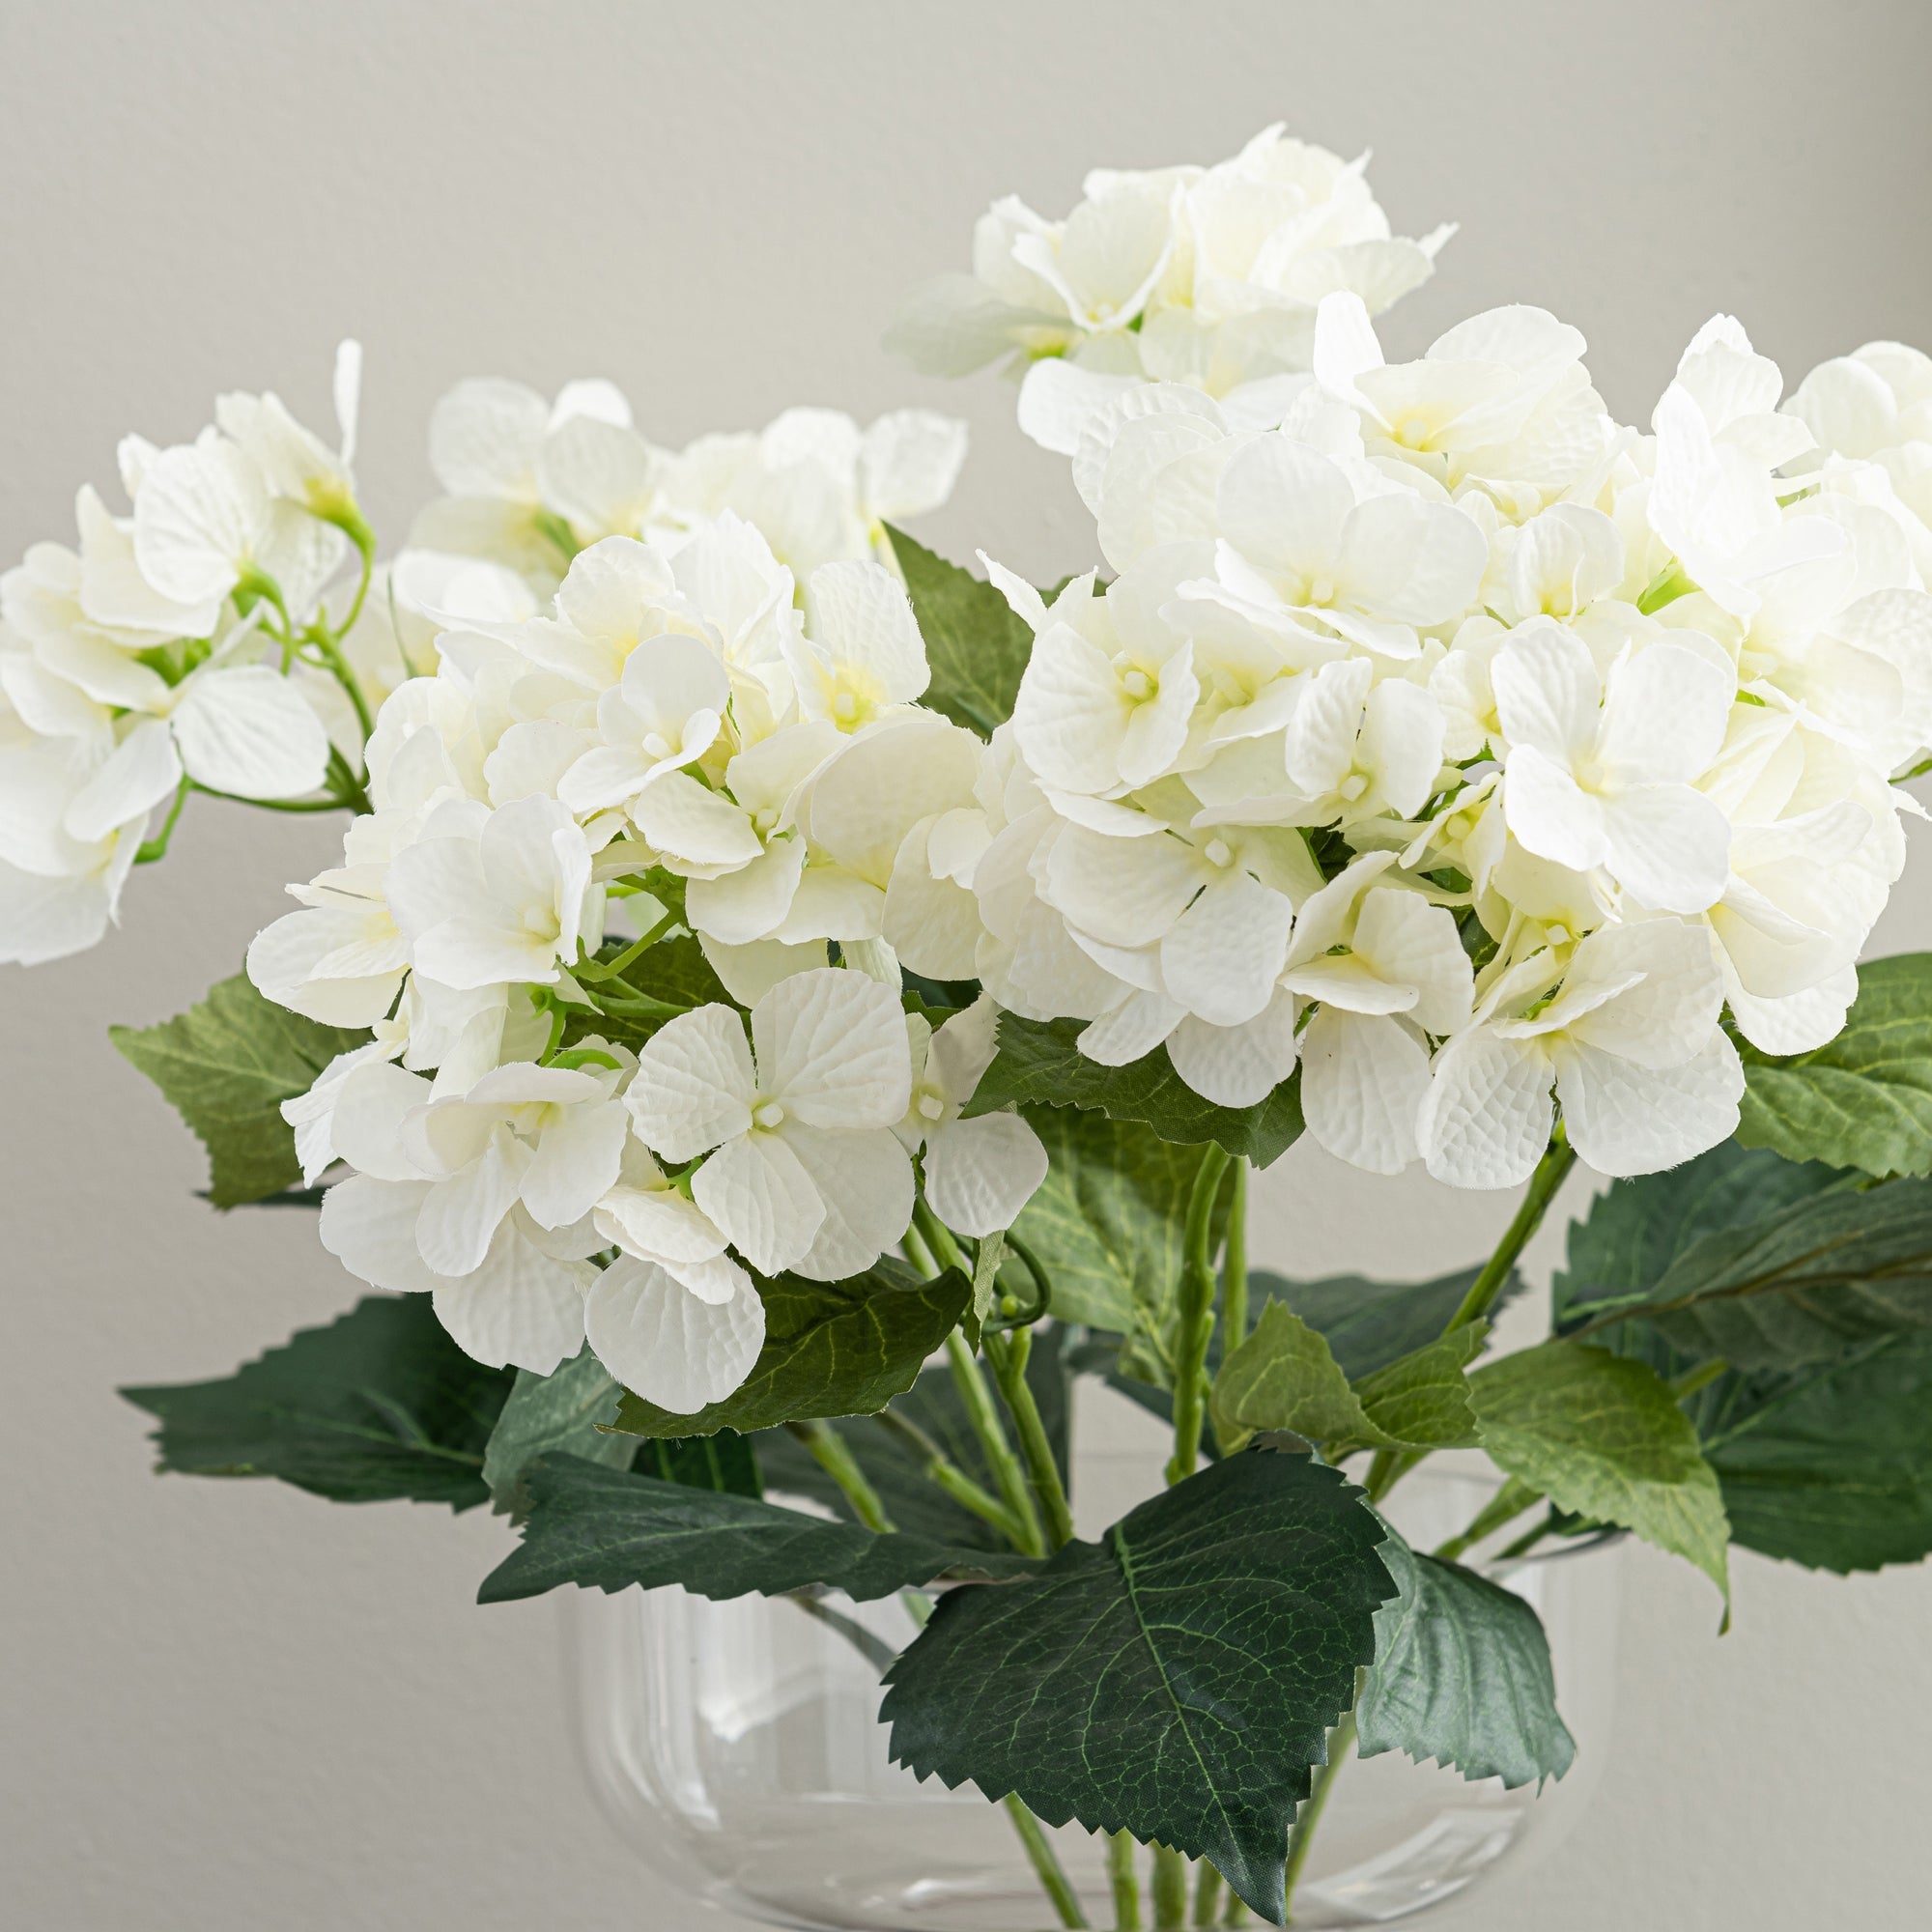 Image of Cream Hydrangea Bush Cream